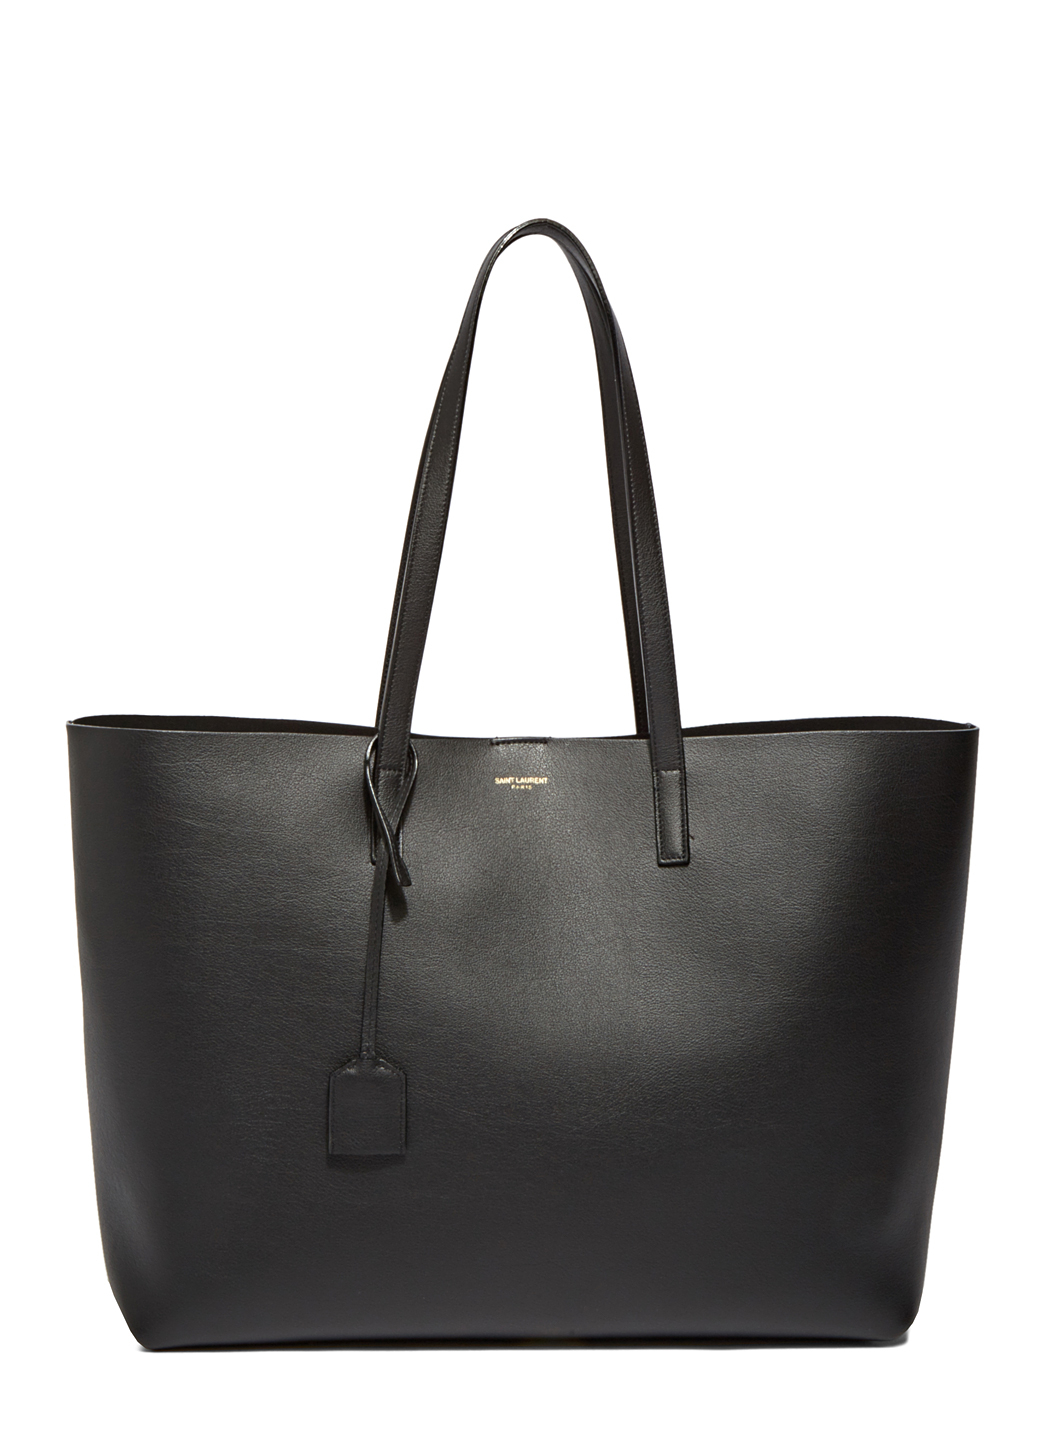 Saint laurent Shopper Large Tote in Black | Lyst